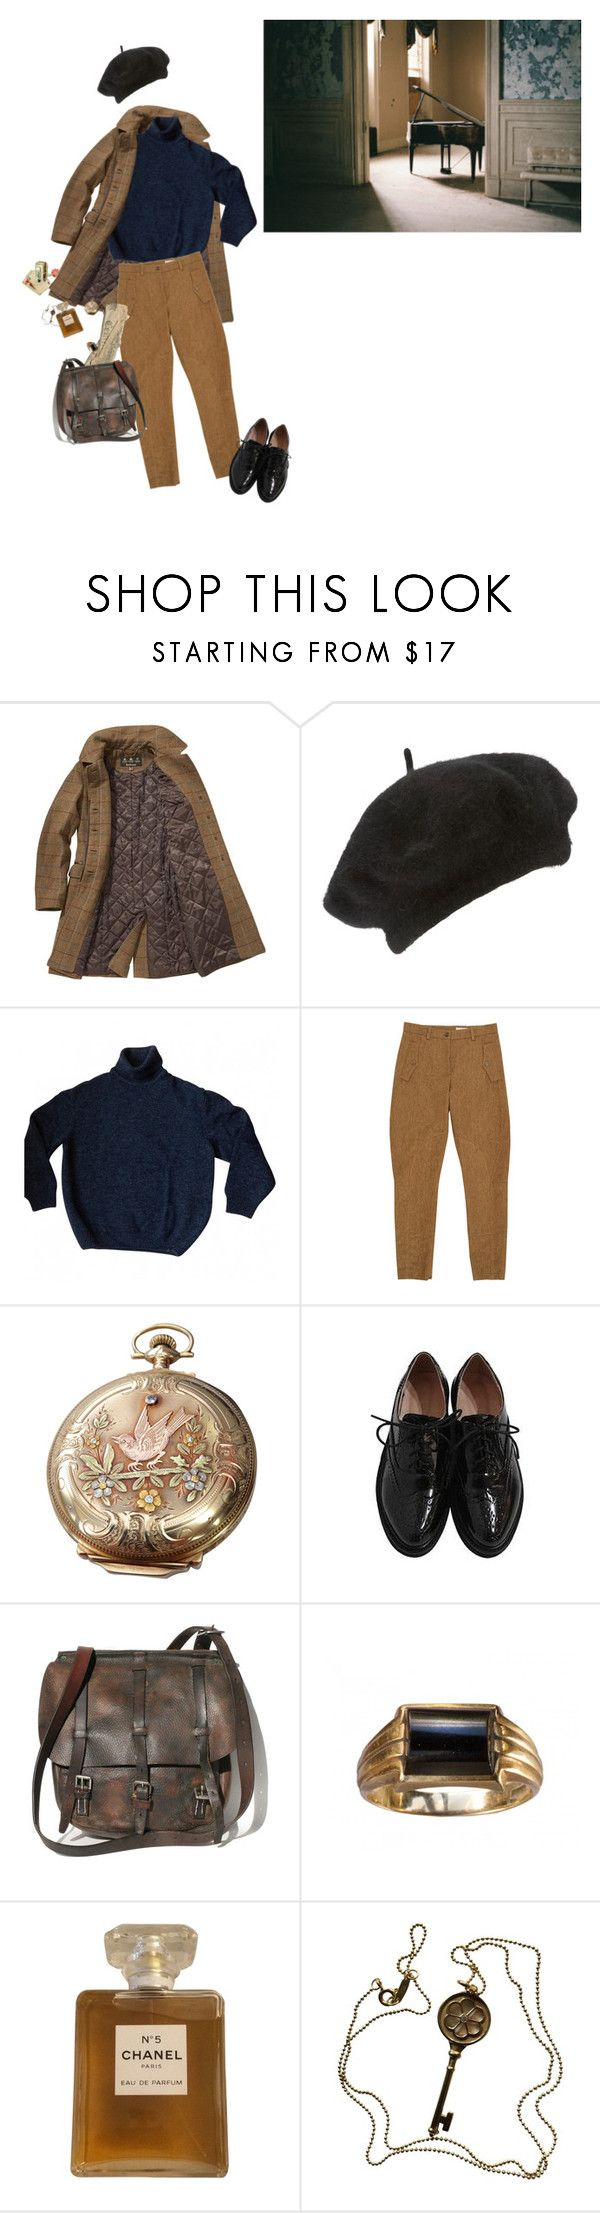 """coldness"" by hurmikakii ❤ liked on Polyvore featuring Barbour, John Lewis, Kenzo, Wunderkind, Elgin, Maybe-Baby, Chanel and Tiffany & Co."